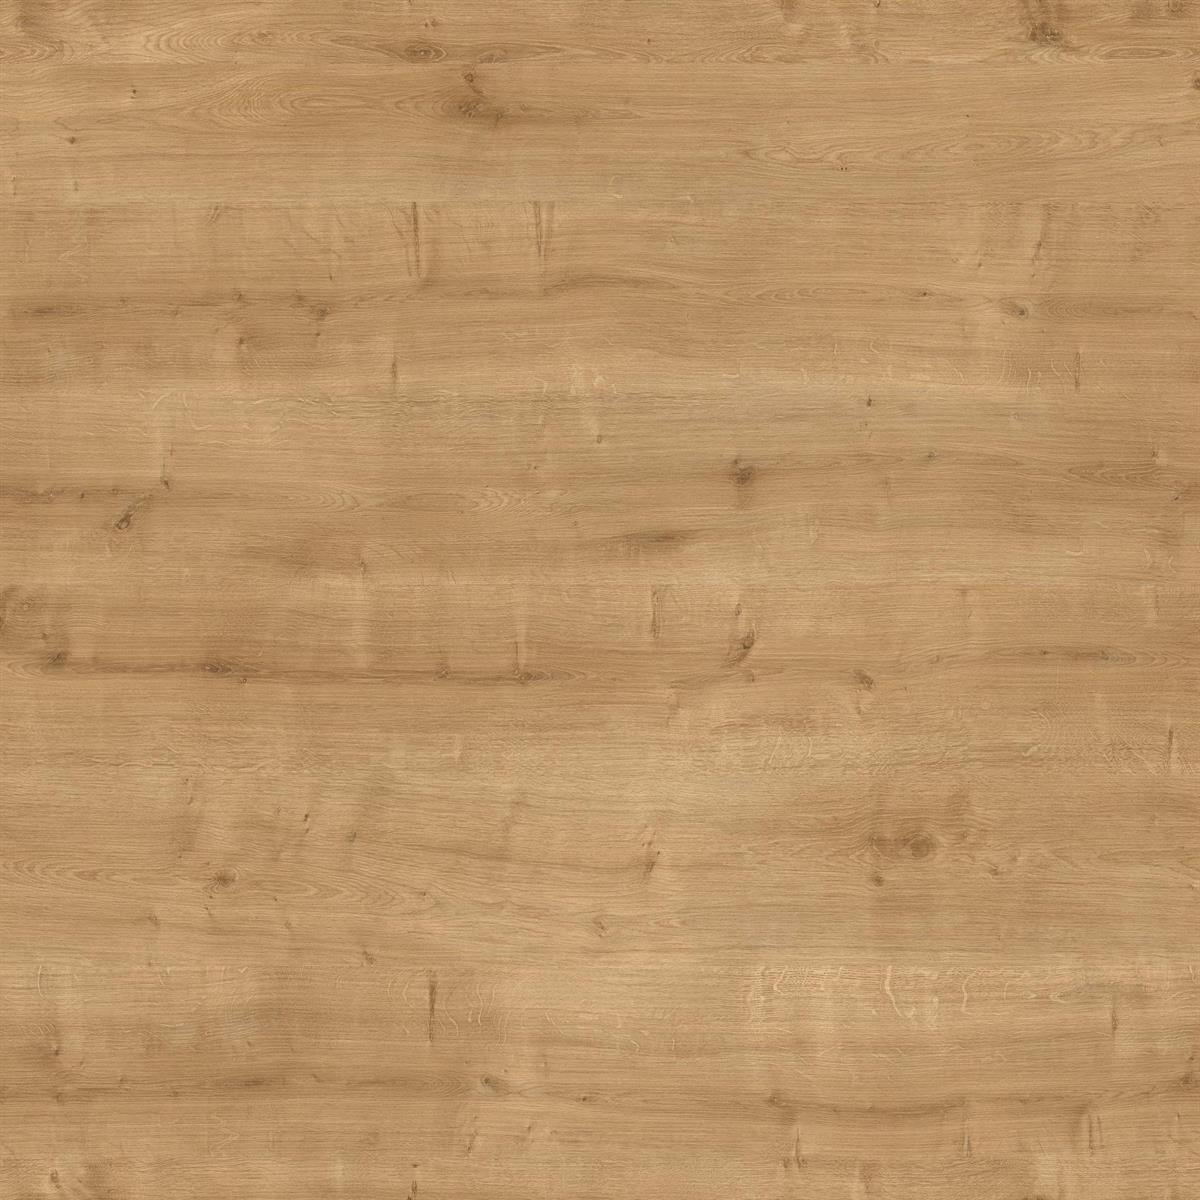 Egger Contemporary Natural Arlington Oak kitchen worktop sample.